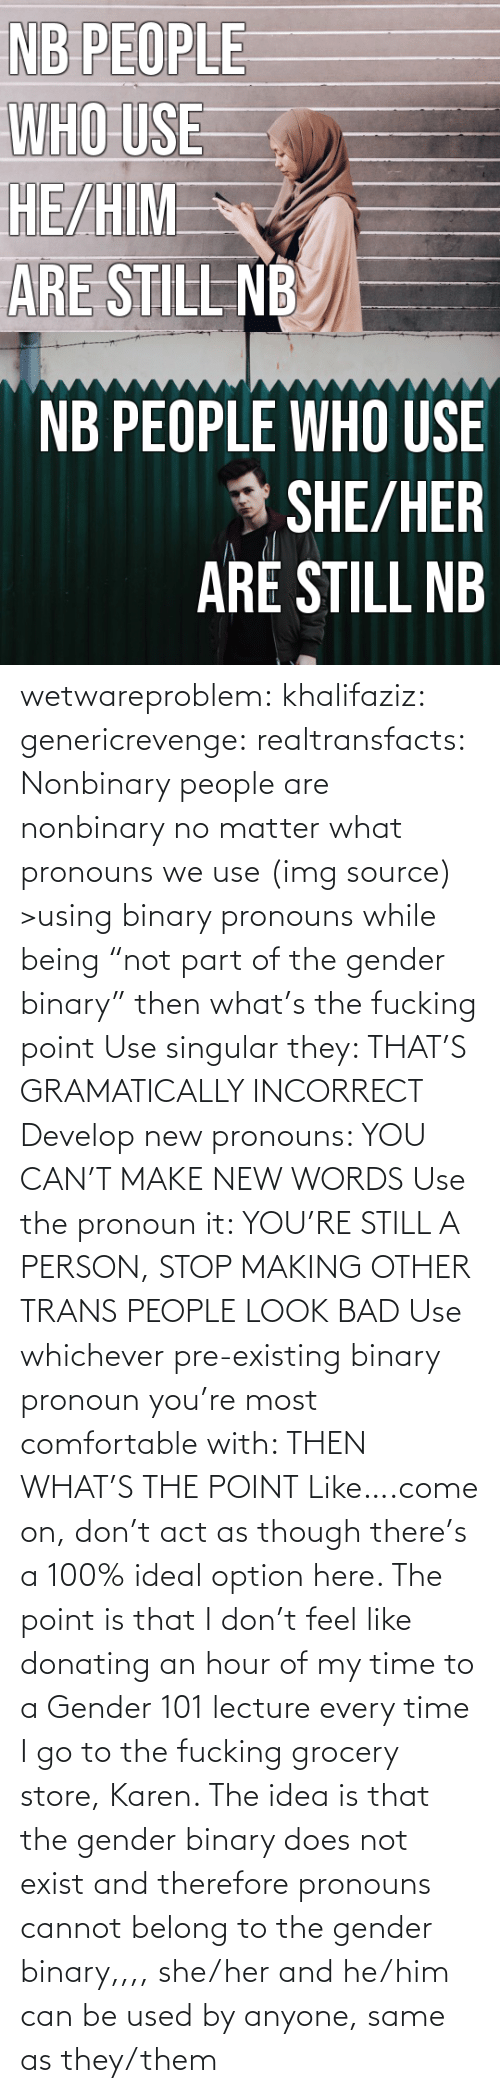 "Men Are: NB PEOPLE  WHO USE  HE/HIM  ARE STILL NB   NB PEOPLE WHO USE  * SHE/HER  ARÉ STILL NB wetwareproblem: khalifaziz:   genericrevenge:   realtransfacts: Nonbinary people are nonbinary no matter what pronouns we use (img source)   >using binary pronouns while being ""not part of the gender binary"" then what's the fucking point   Use singular they: THAT'S GRAMATICALLY INCORRECT Develop new pronouns: YOU CAN'T MAKE NEW WORDS Use the pronoun it: YOU'RE STILL A PERSON, STOP MAKING OTHER TRANS PEOPLE LOOK BAD Use whichever pre-existing binary pronoun you're most comfortable with: THEN WHAT'S THE POINT Like….come on, don't act as though there's a 100% ideal option here.    The point is that I don't feel like donating an hour of my time to a Gender 101 lecture every time I go to the fucking grocery store, Karen.     The idea is that the gender binary does not exist and therefore pronouns cannot belong to the gender binary,,,, she/her and he/him can be used by anyone, same as they/them"